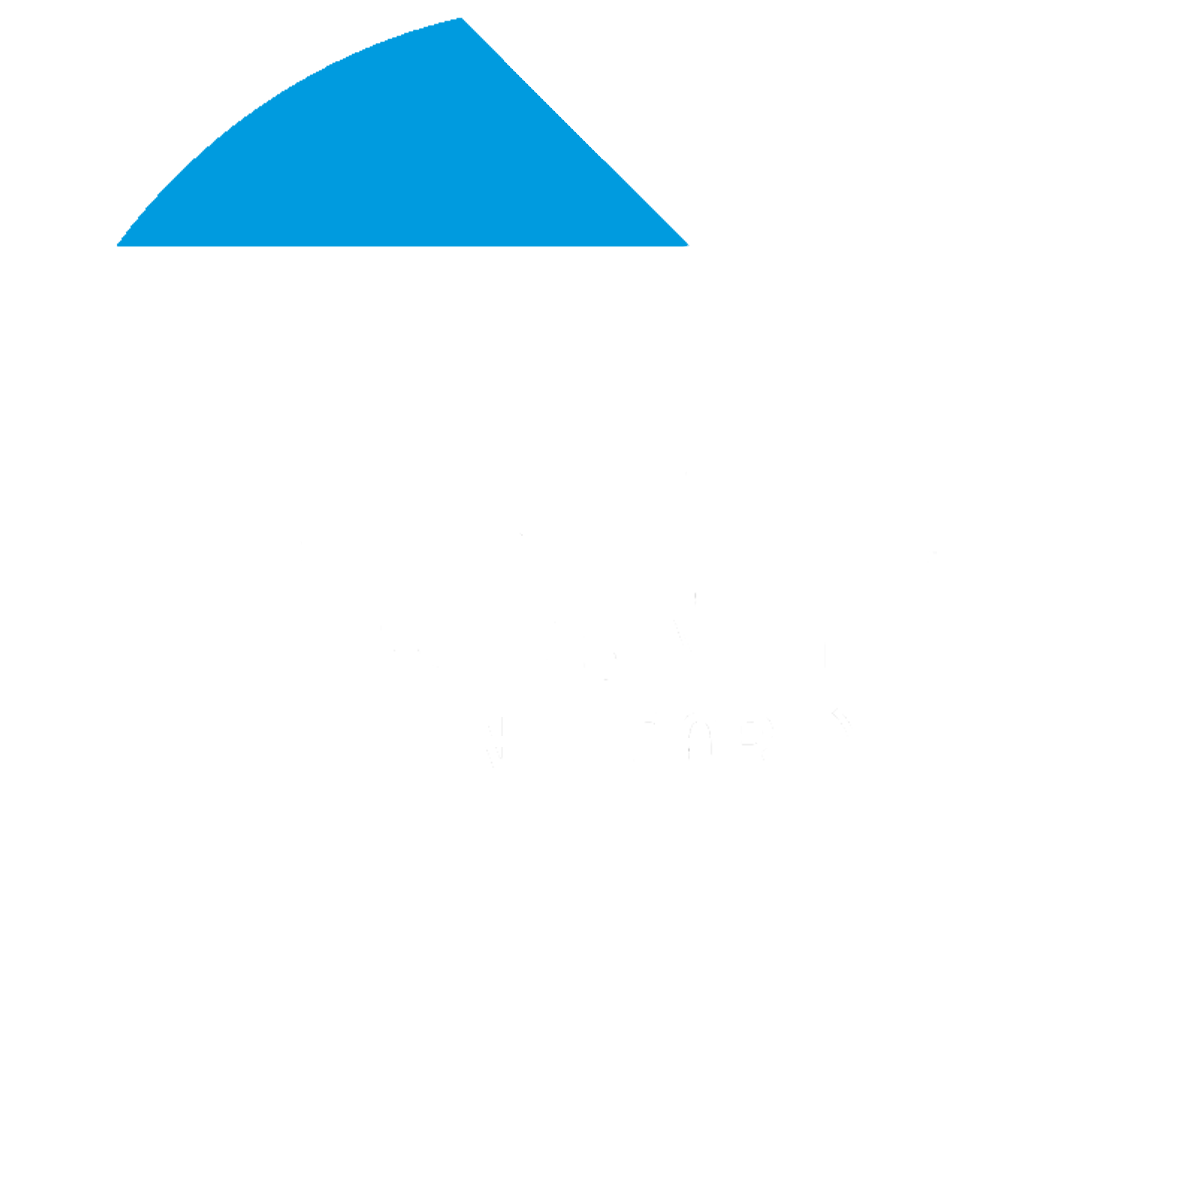 Birds Eye Video LLC